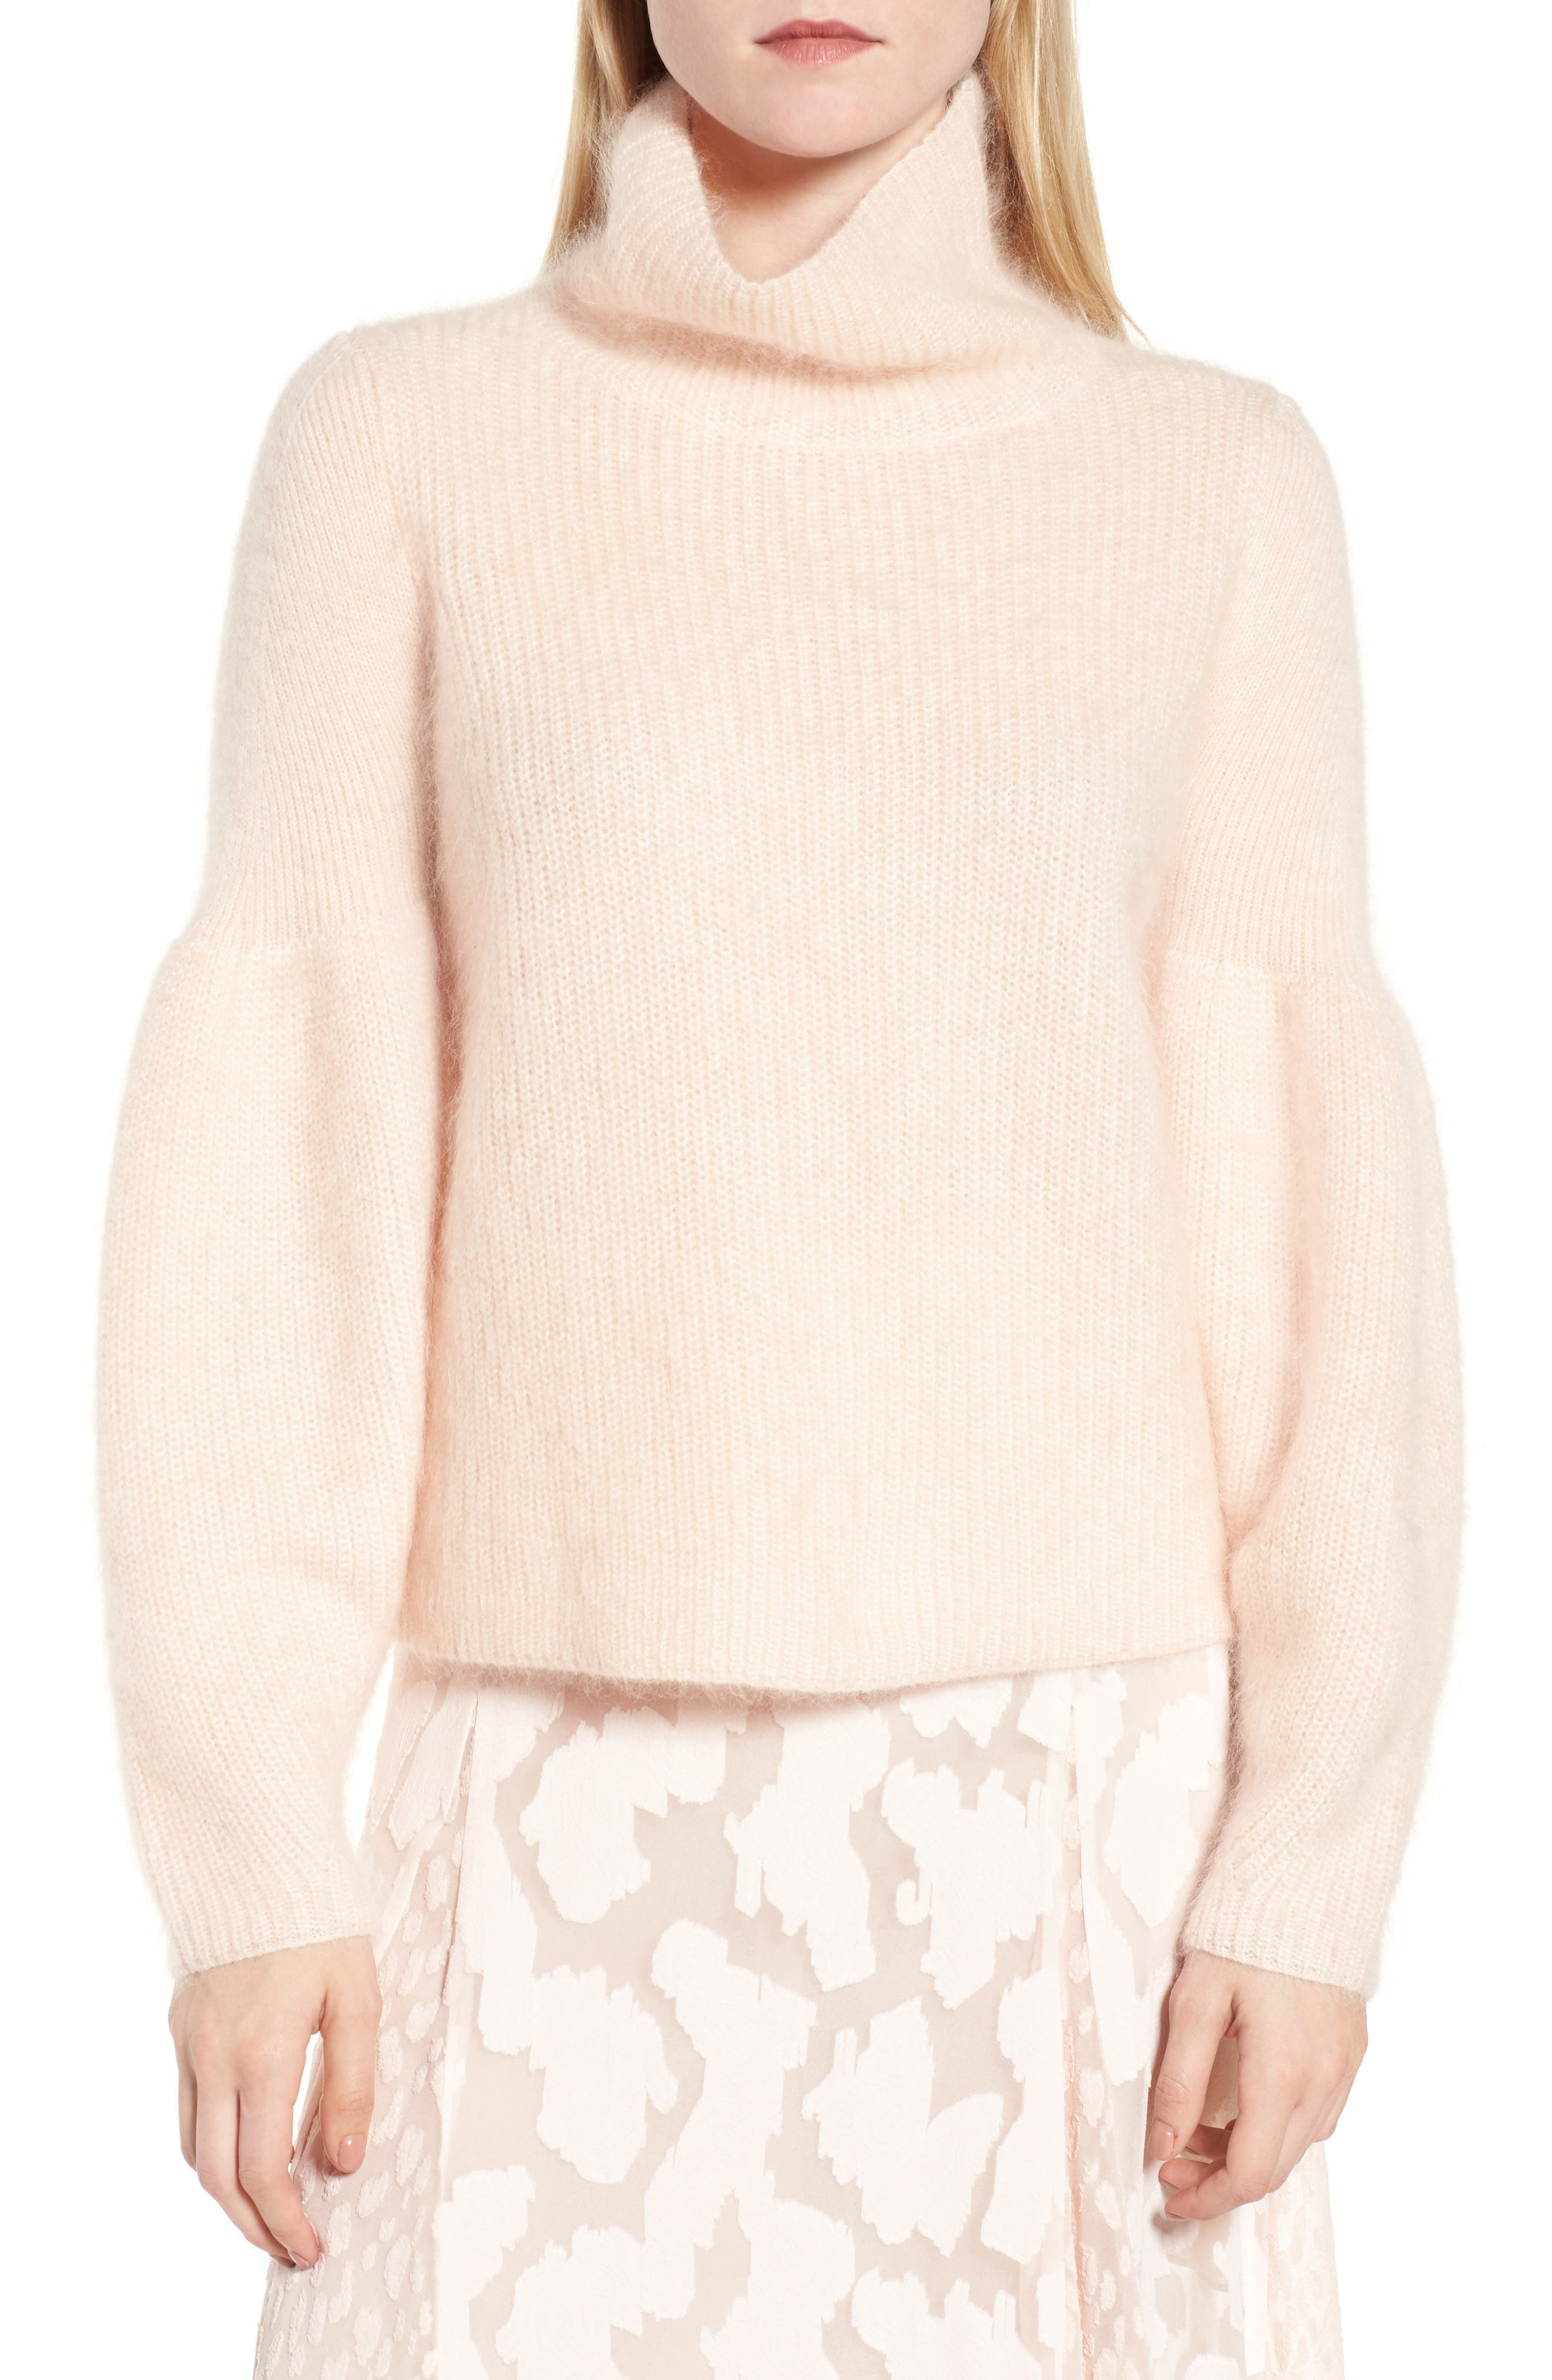 Poet Sleeve Sweater,                             Main thumbnail 1, color,